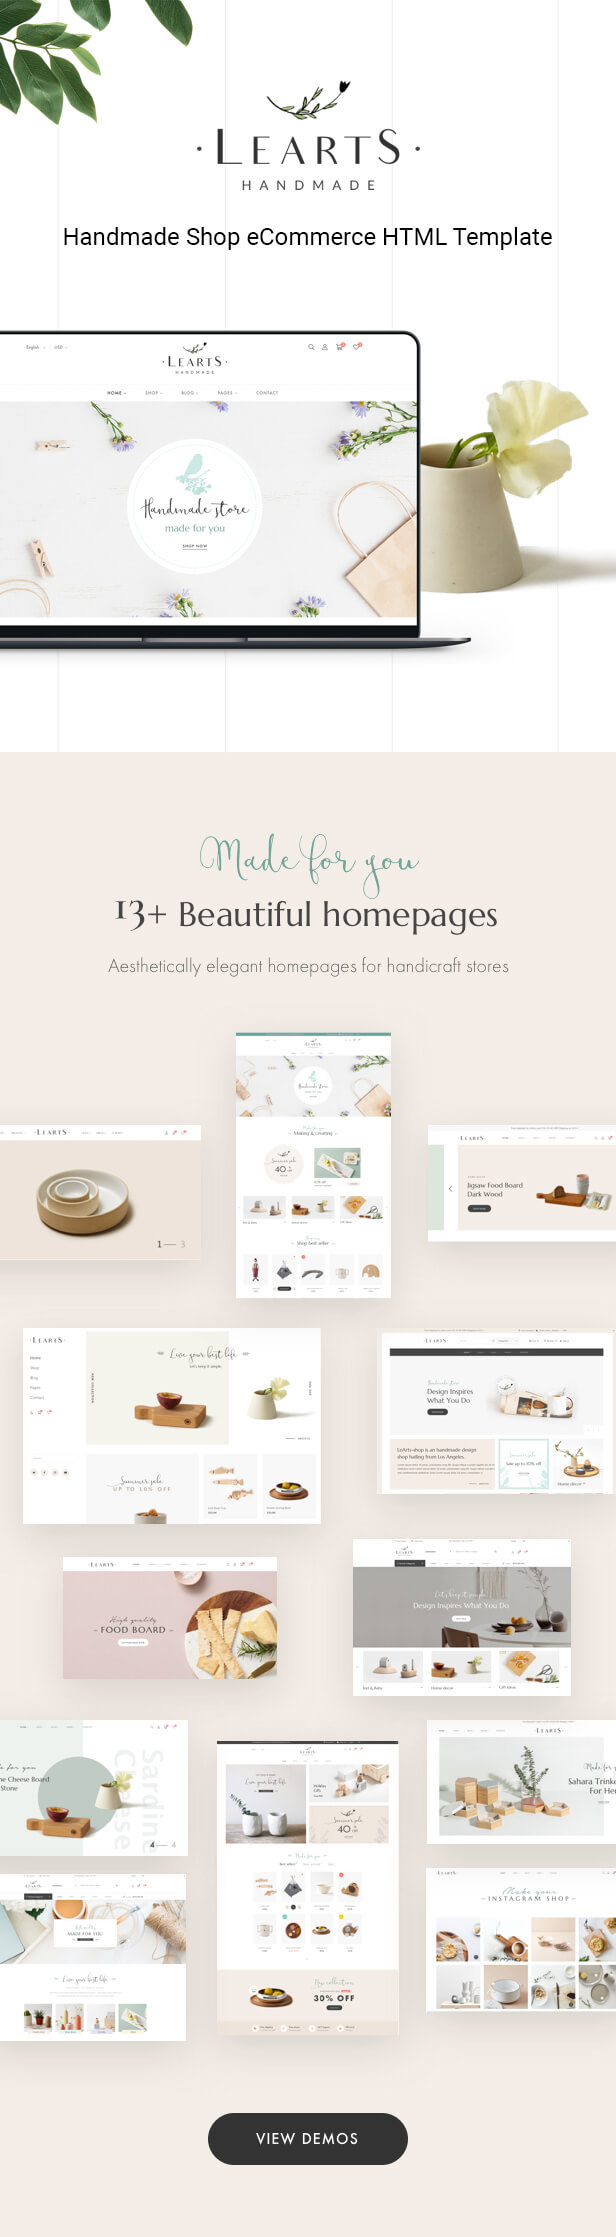 Learts – The Best Handmade Shop Shopify Theme